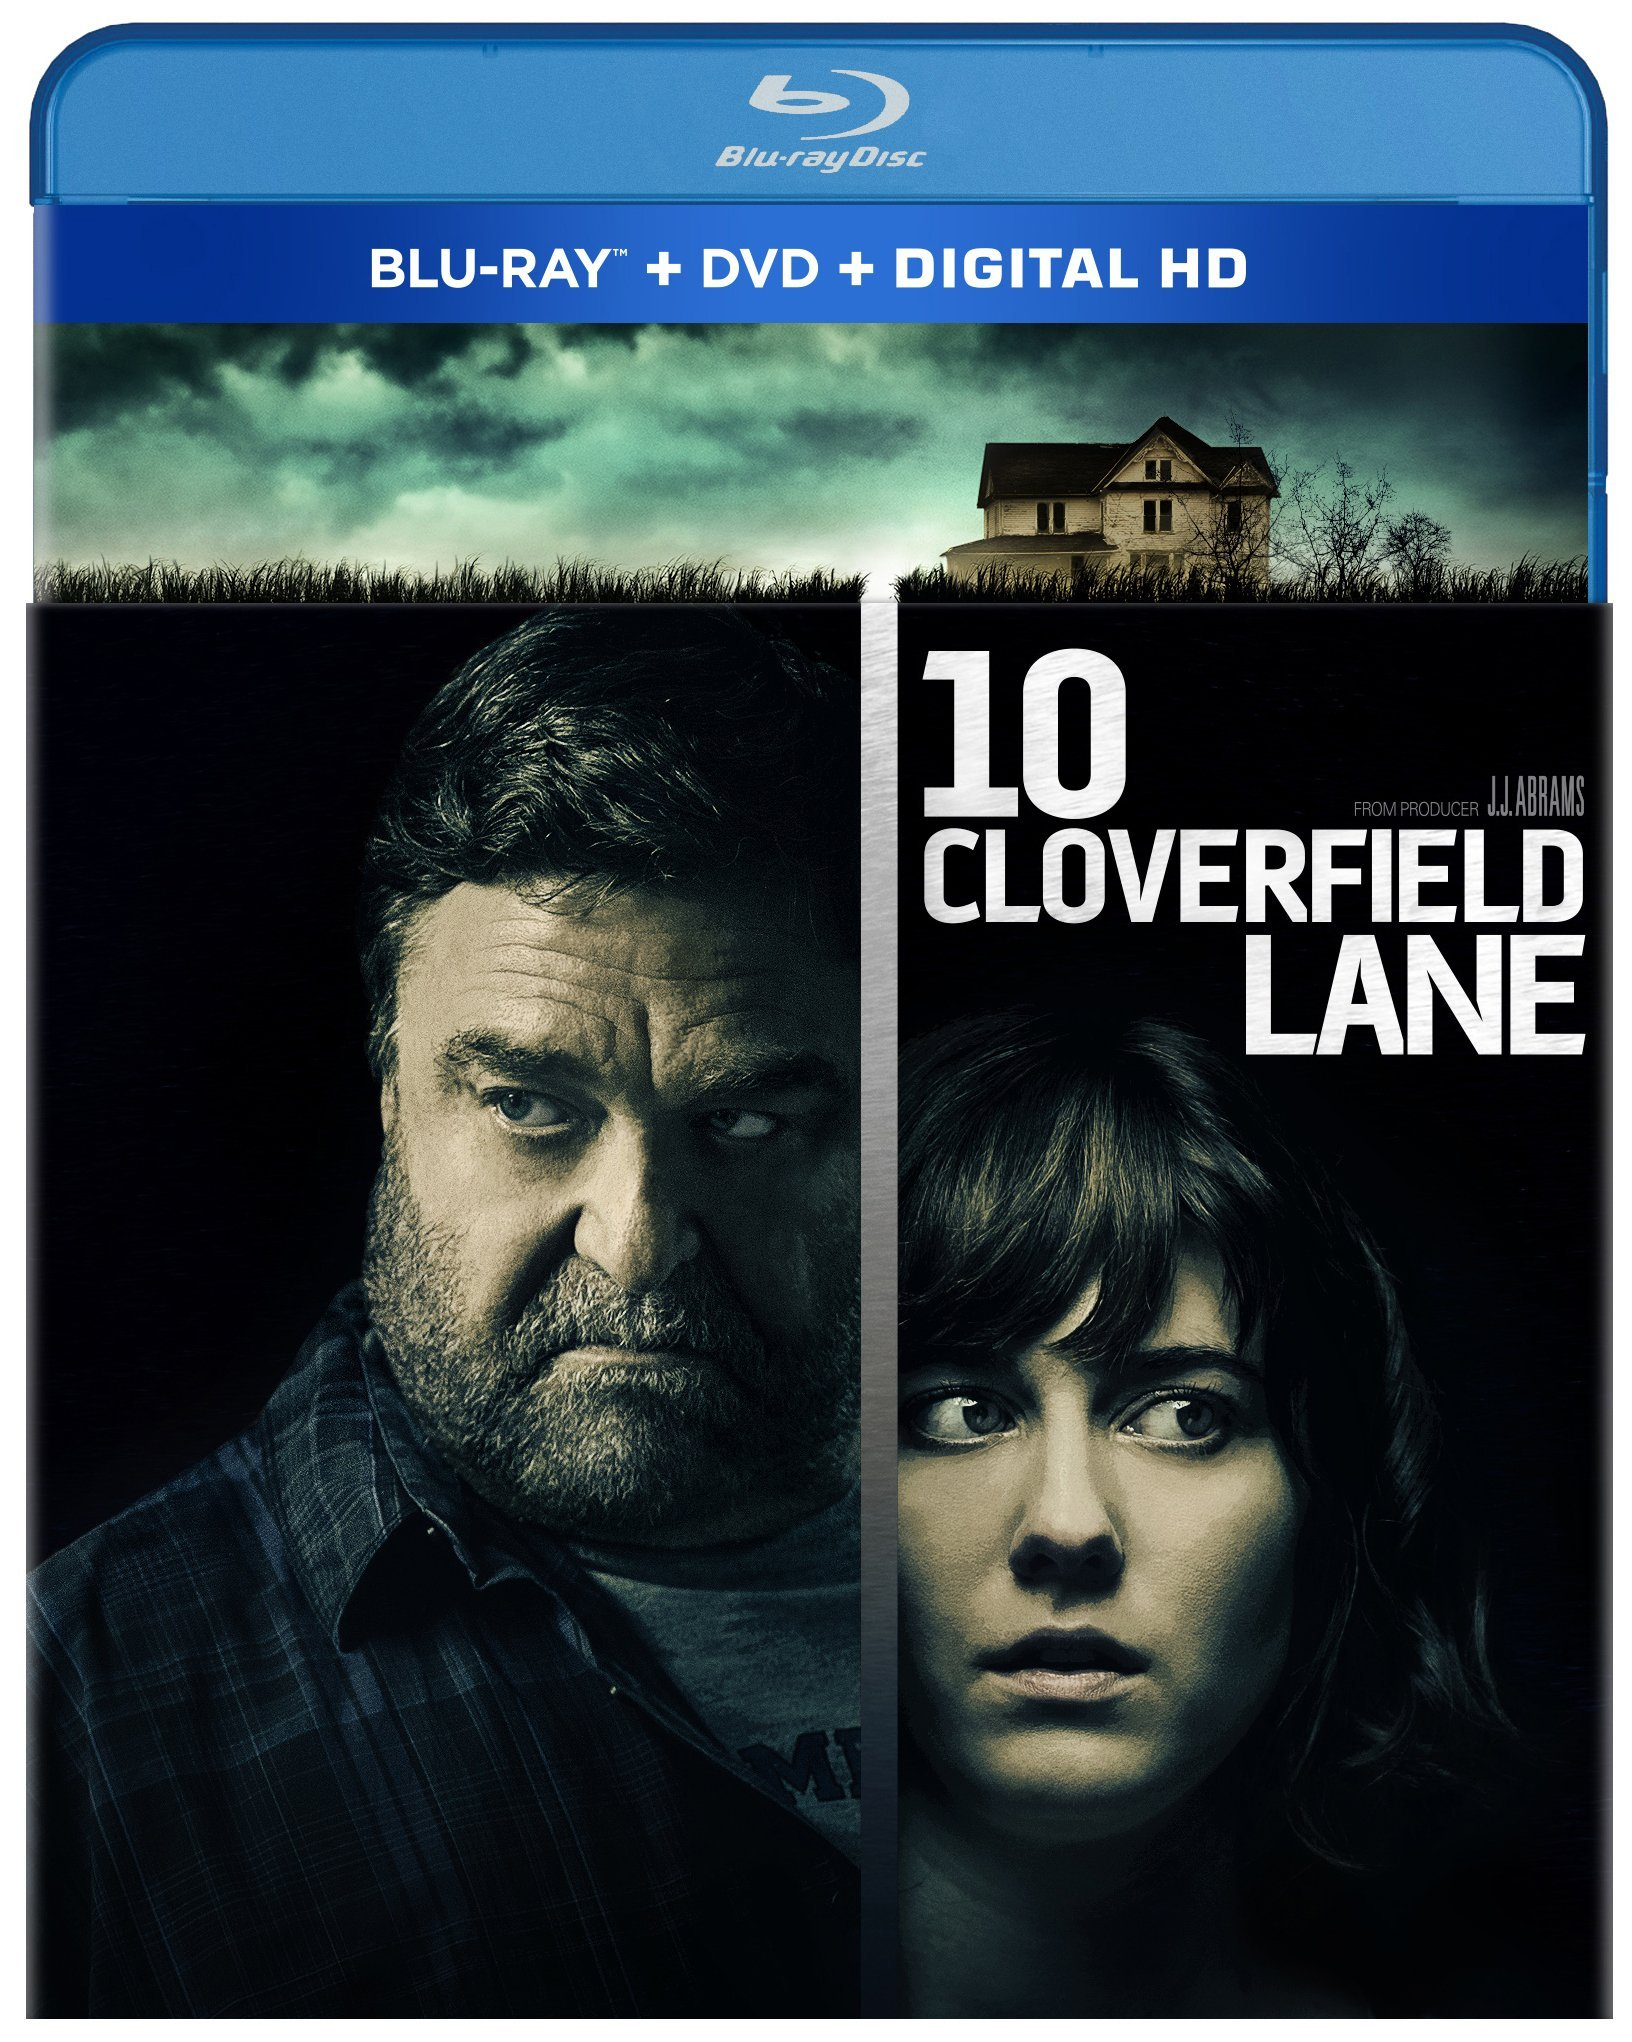 Blu-ray : 10 Cloverfield Lane (With DVD, Digitally Mastered in HD, 2 Pack, 2 Disc)